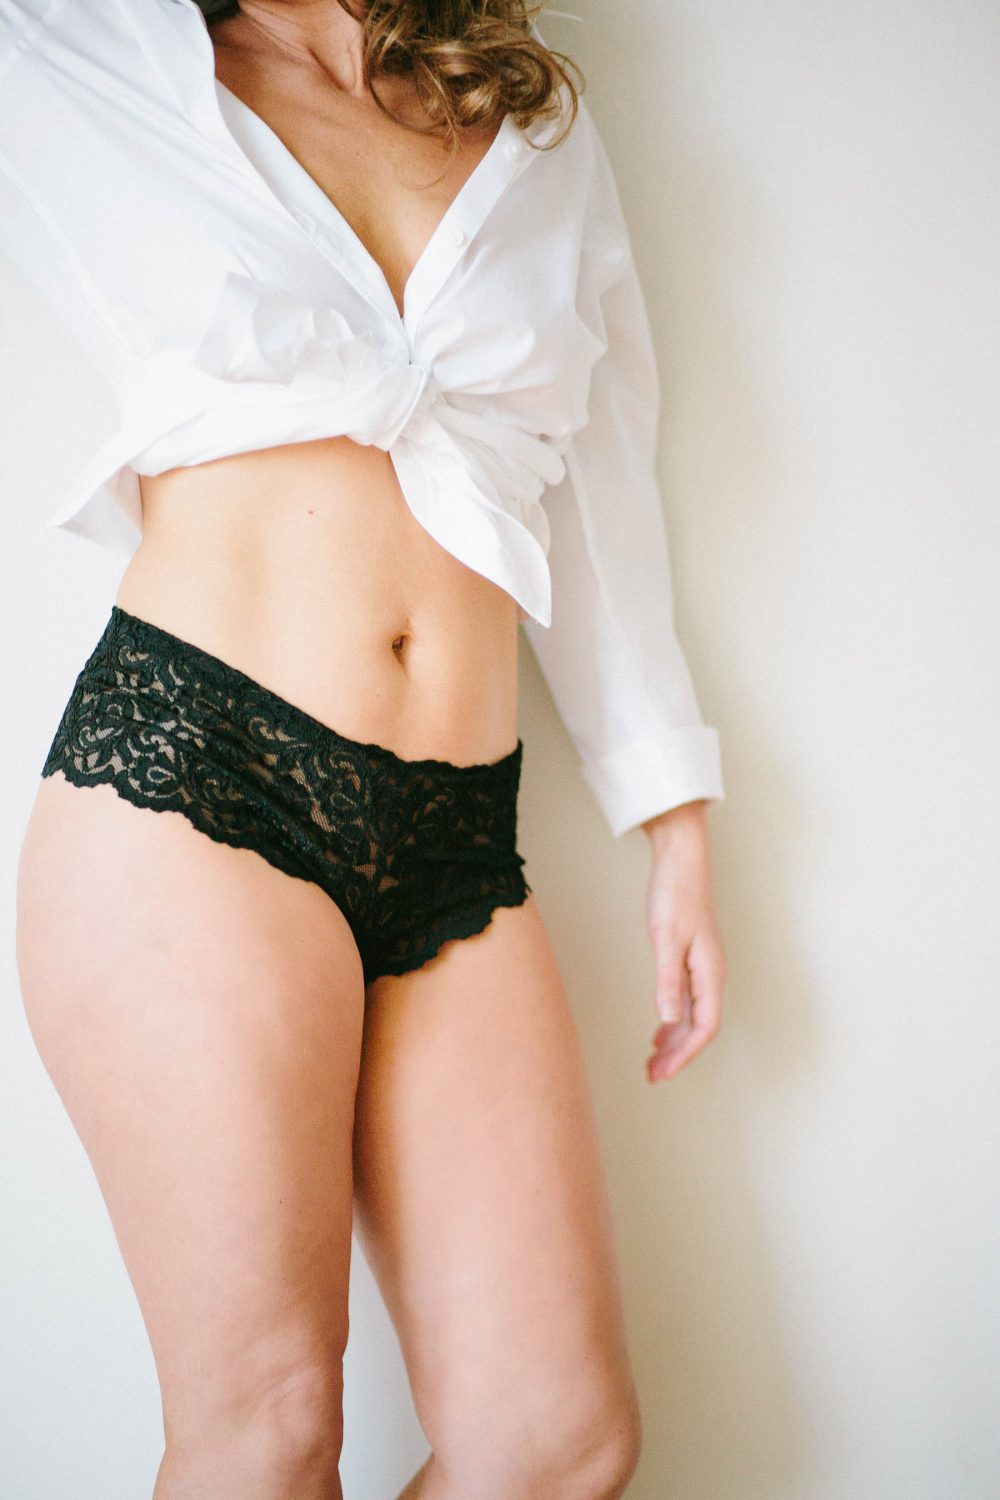 10-boston-boudoir-lifestyle-photographer